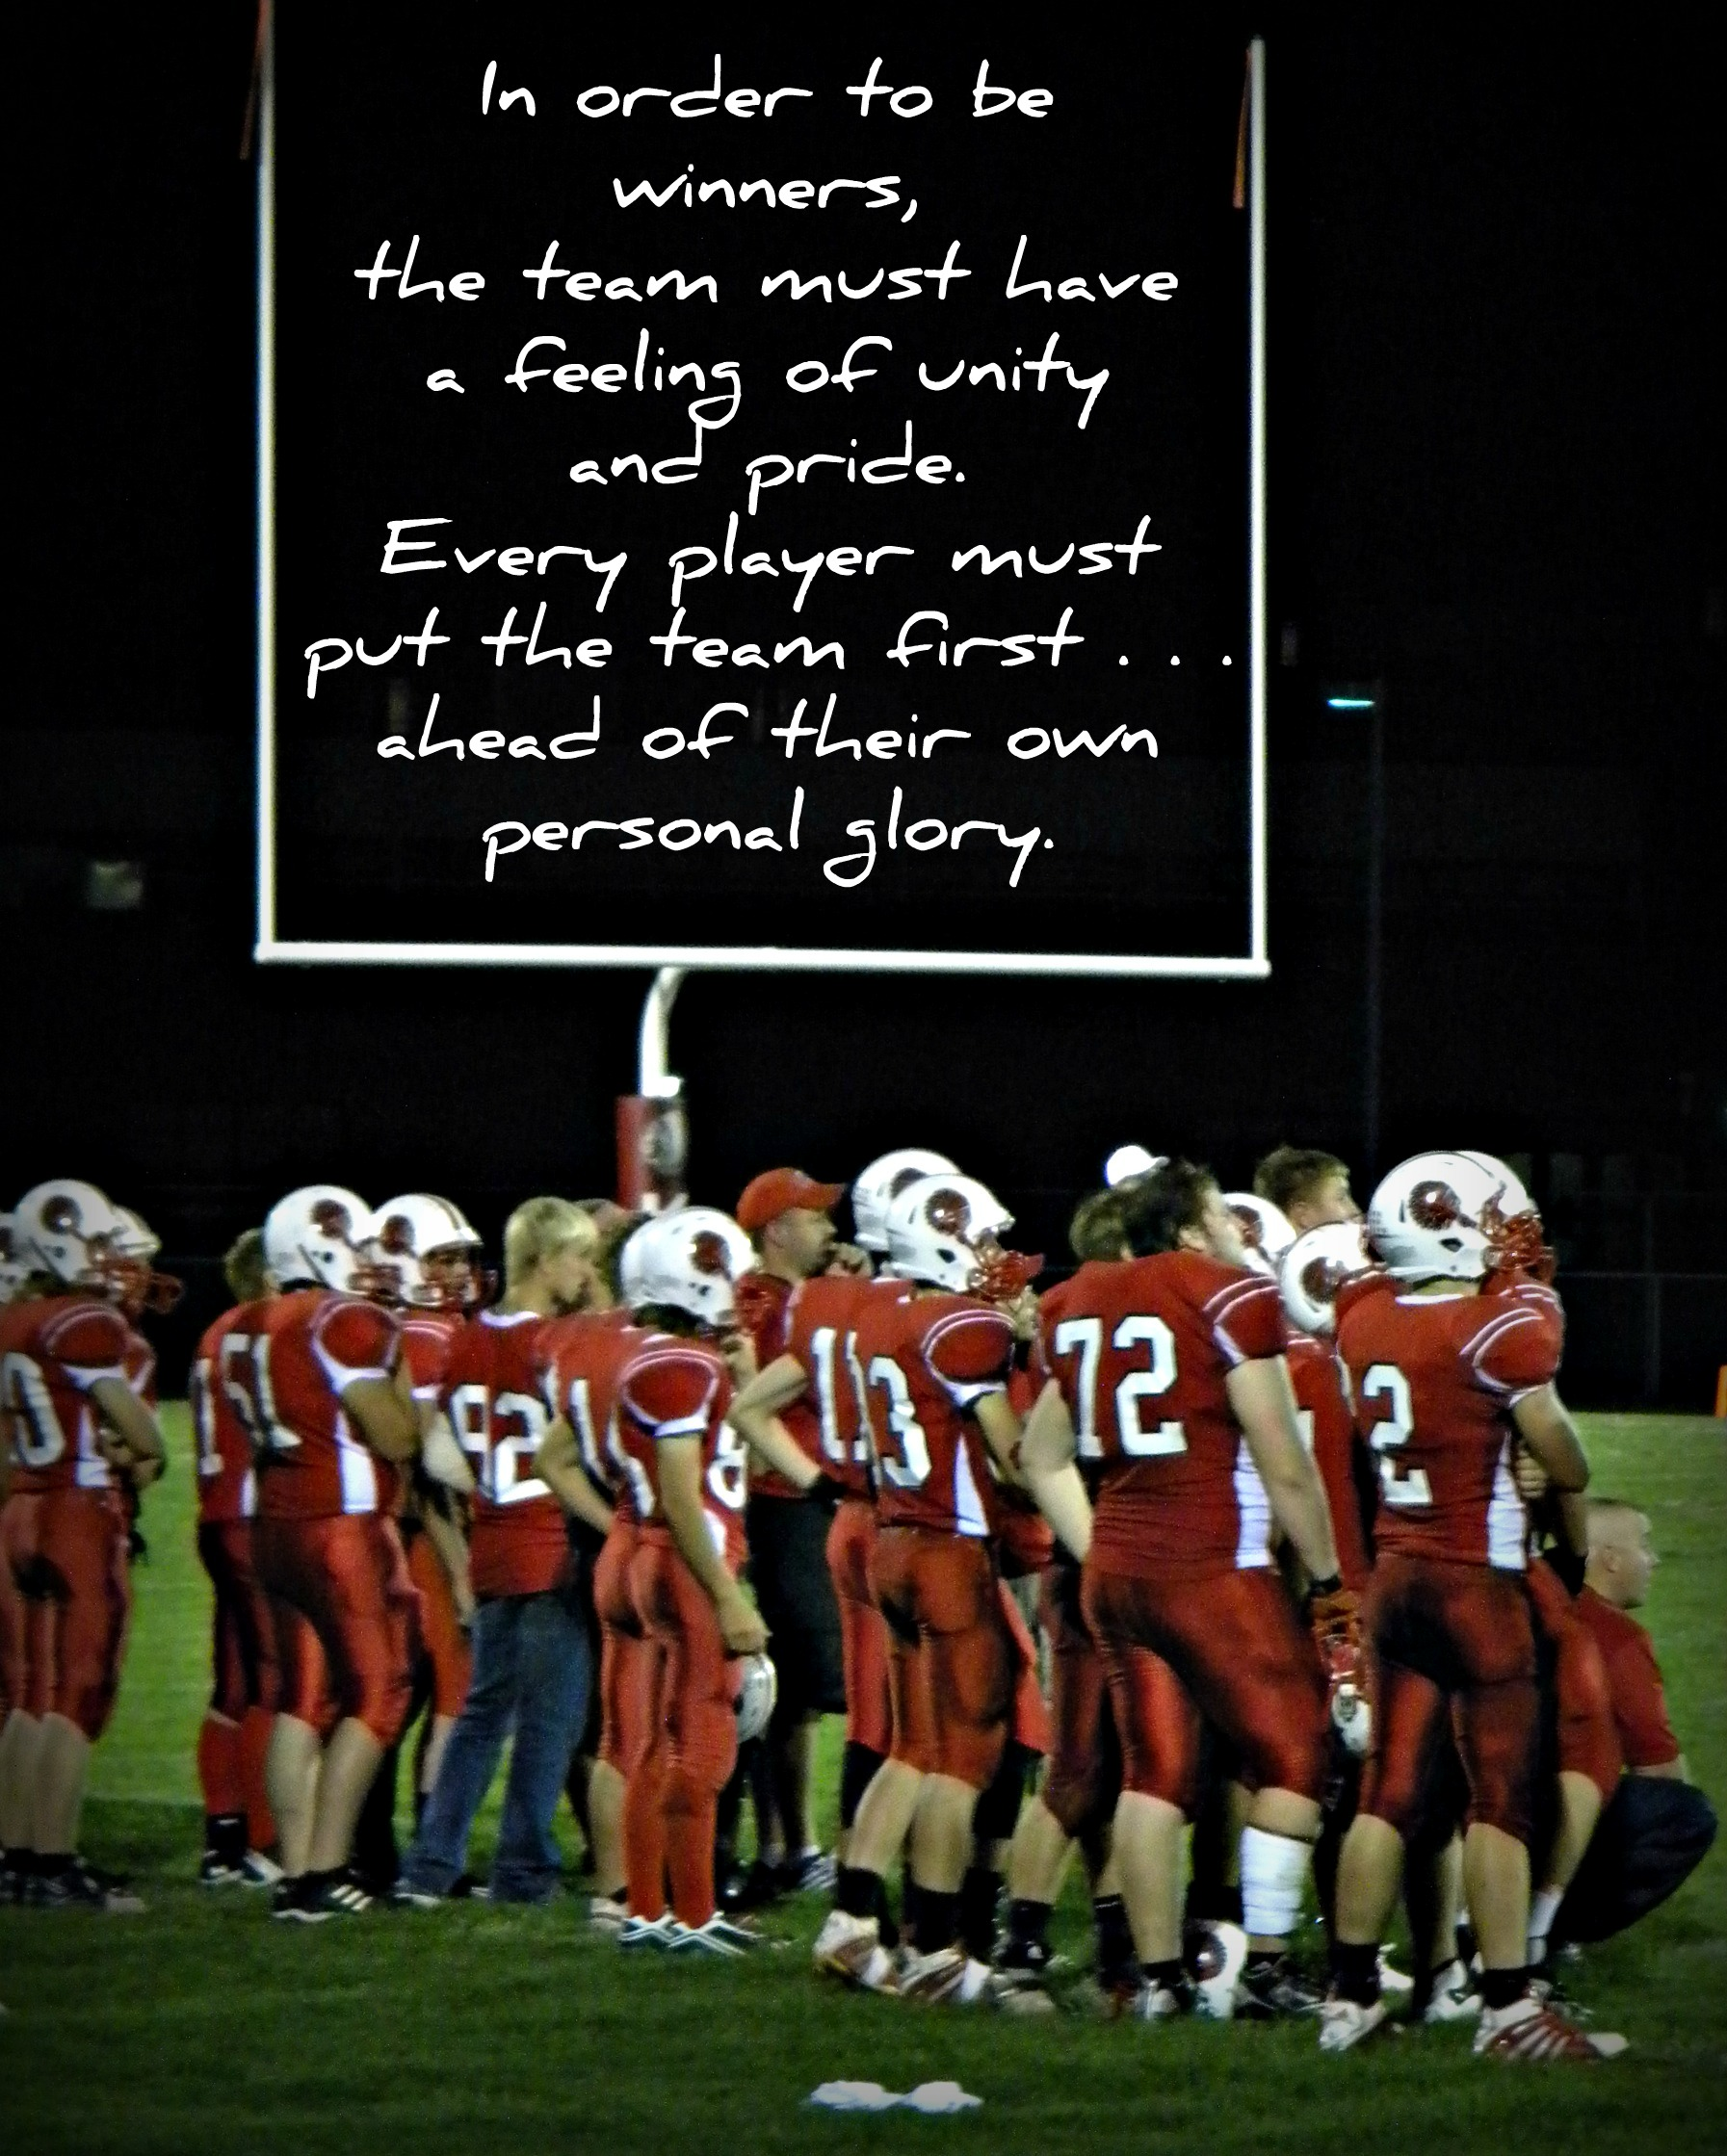 Motivational Quotes For Sports Teams: High School Sports Team Quotes. QuotesGram